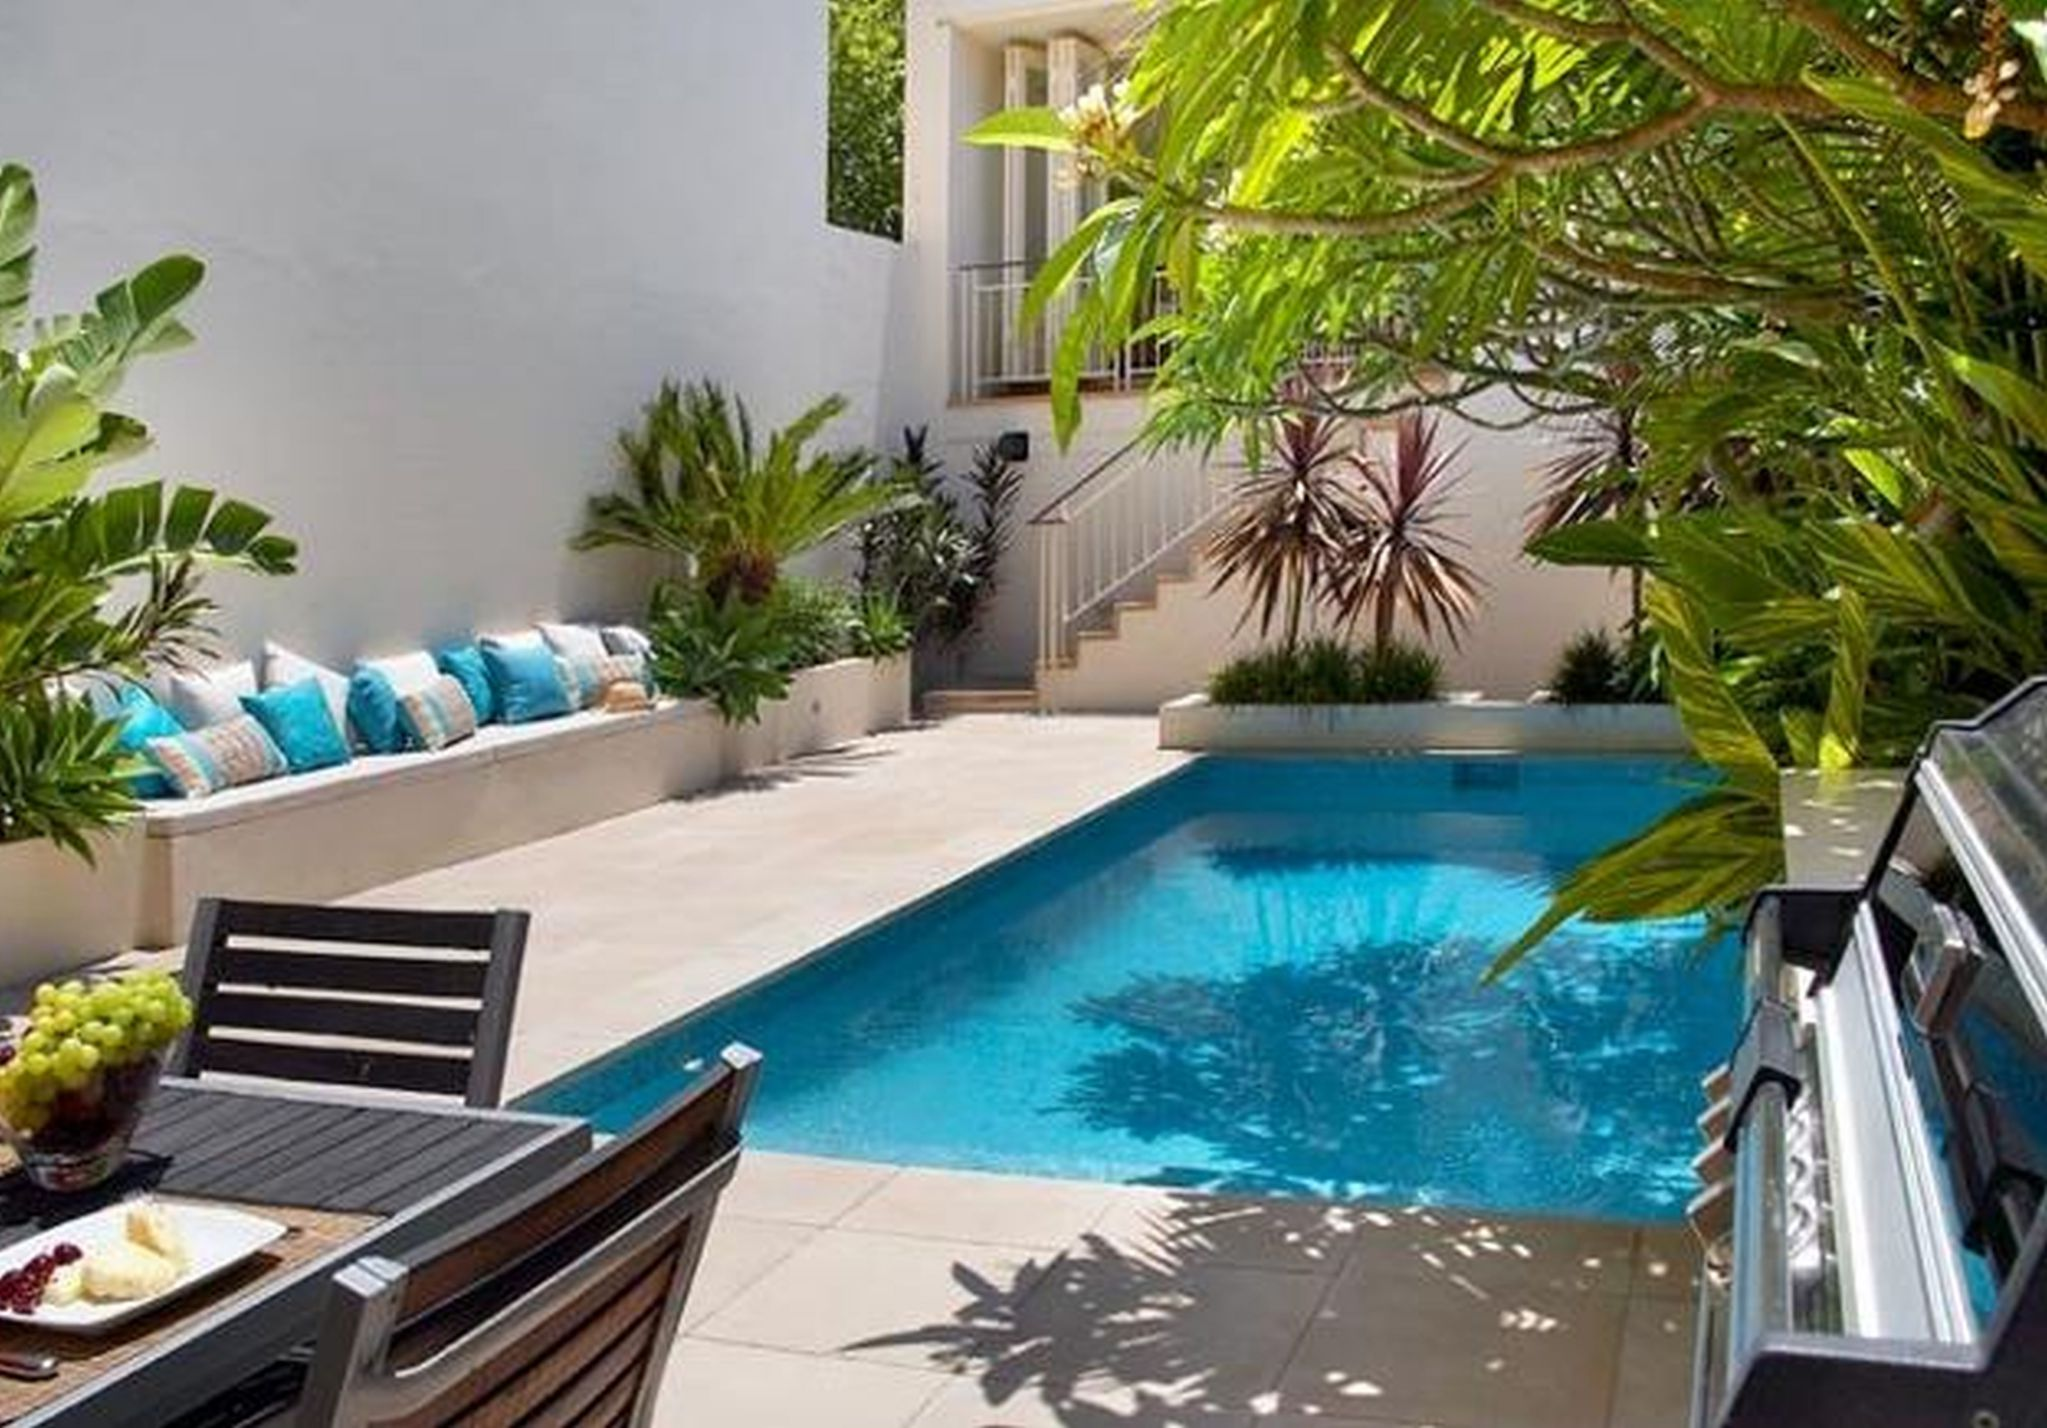 Clean Swimming Pool also Lush Seat With Pillows For Small Yard